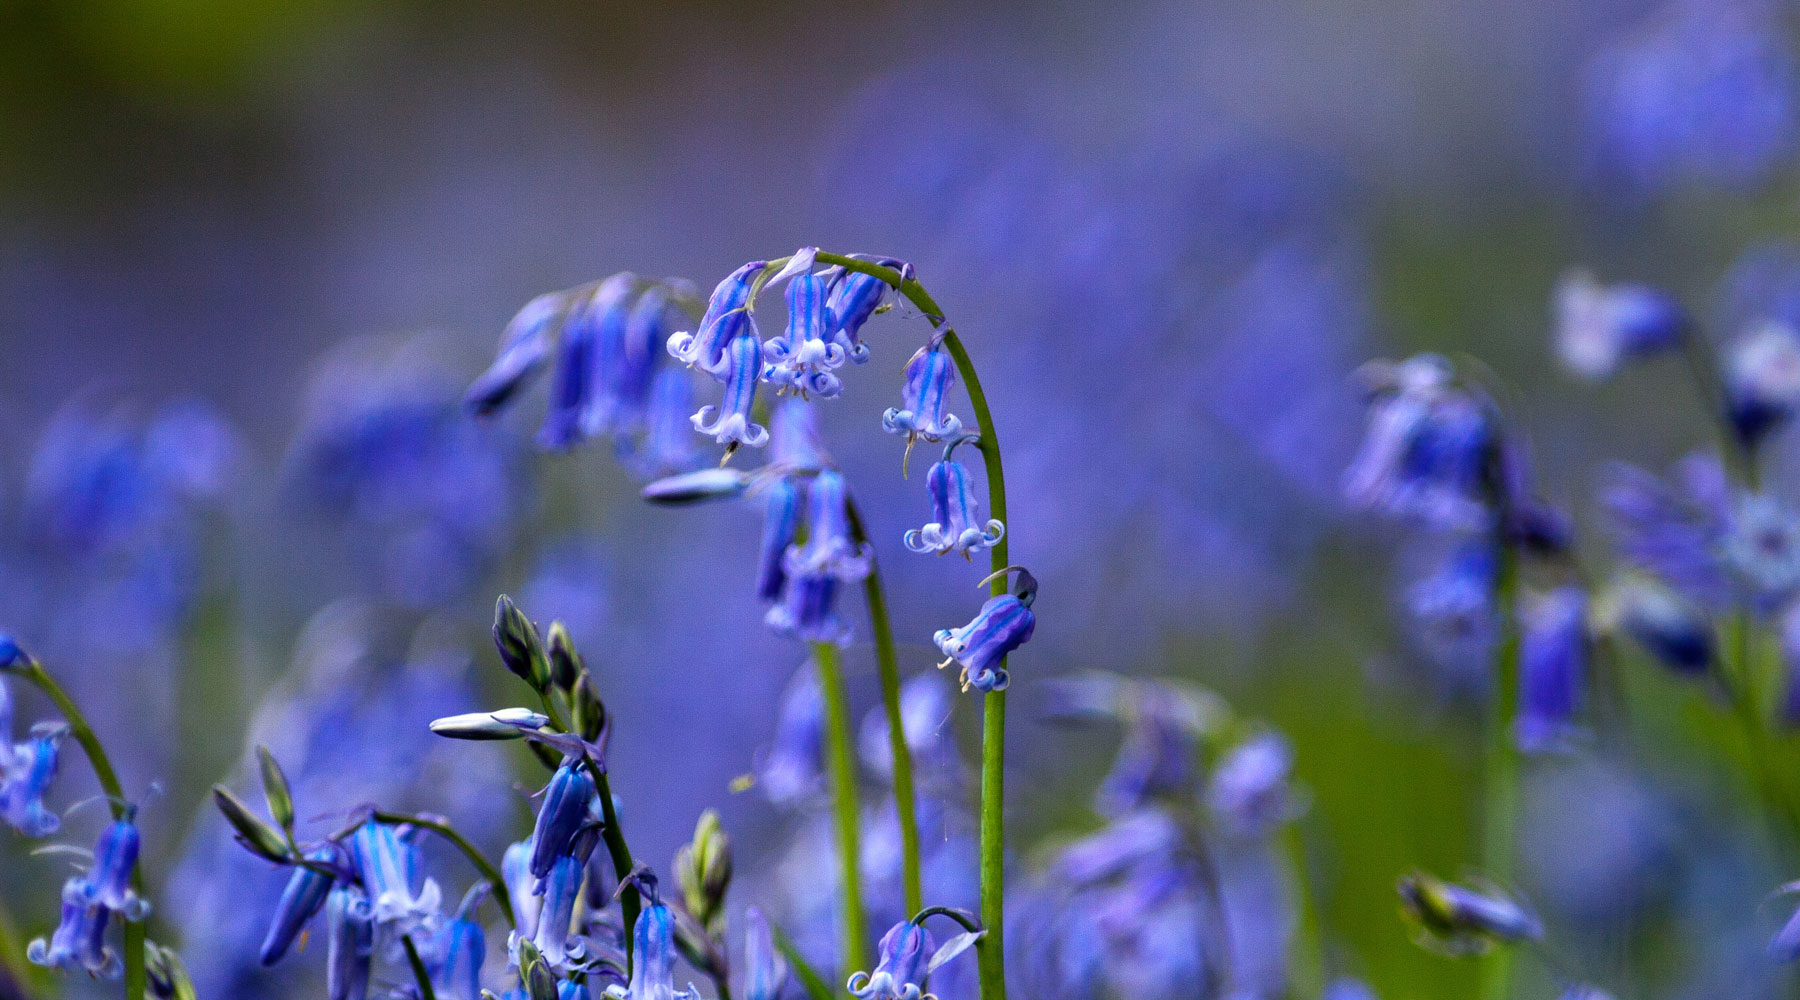 Mike Snelle | Bluebells